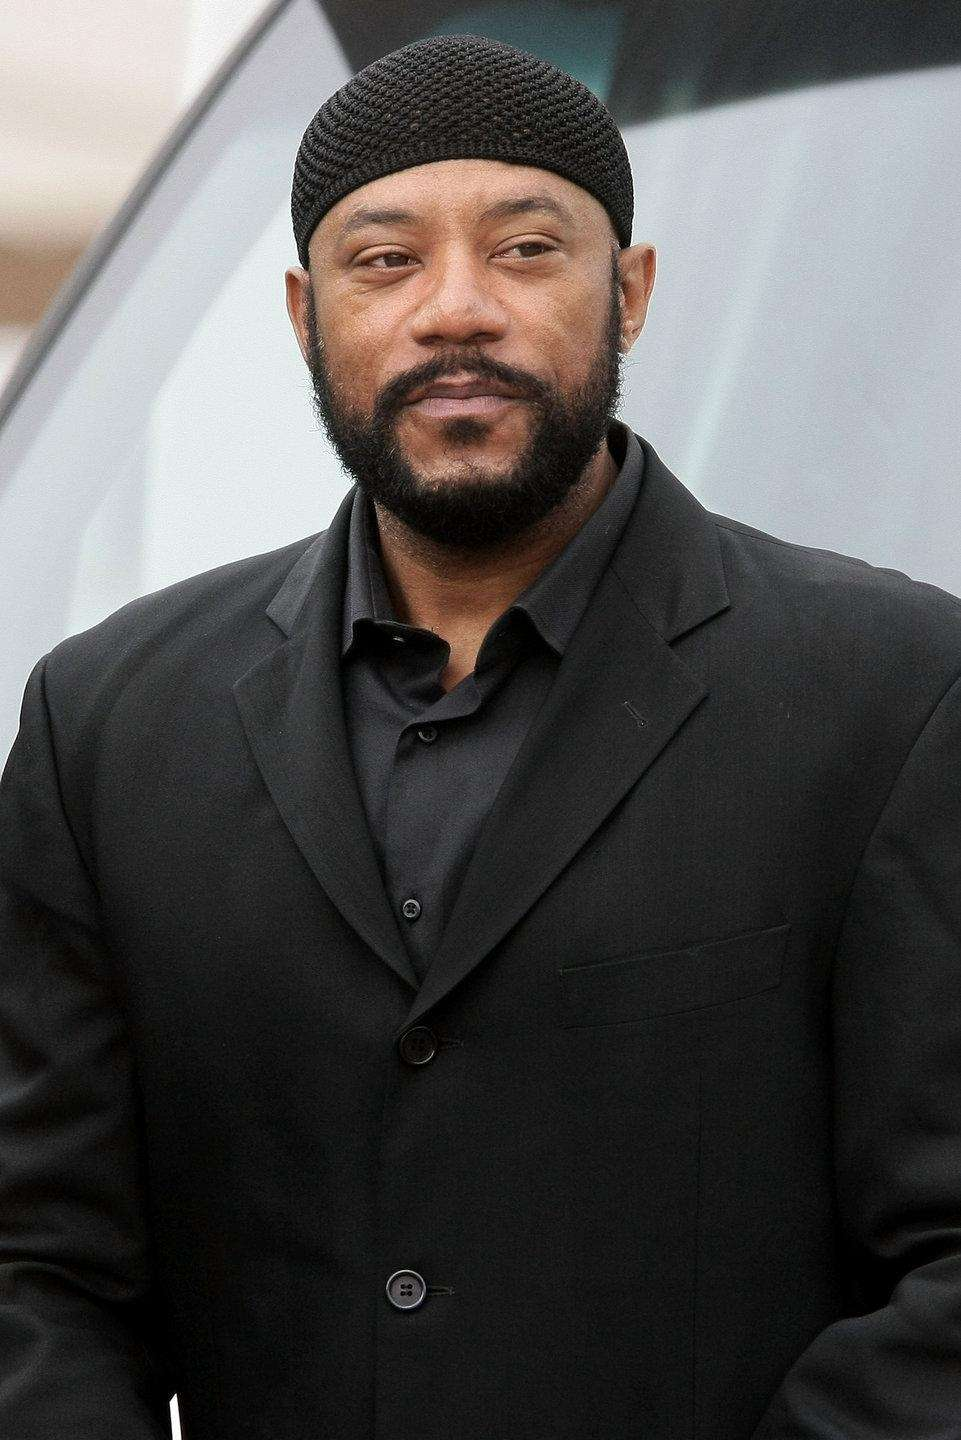 Comedian and actor Ricky Harris, who had a